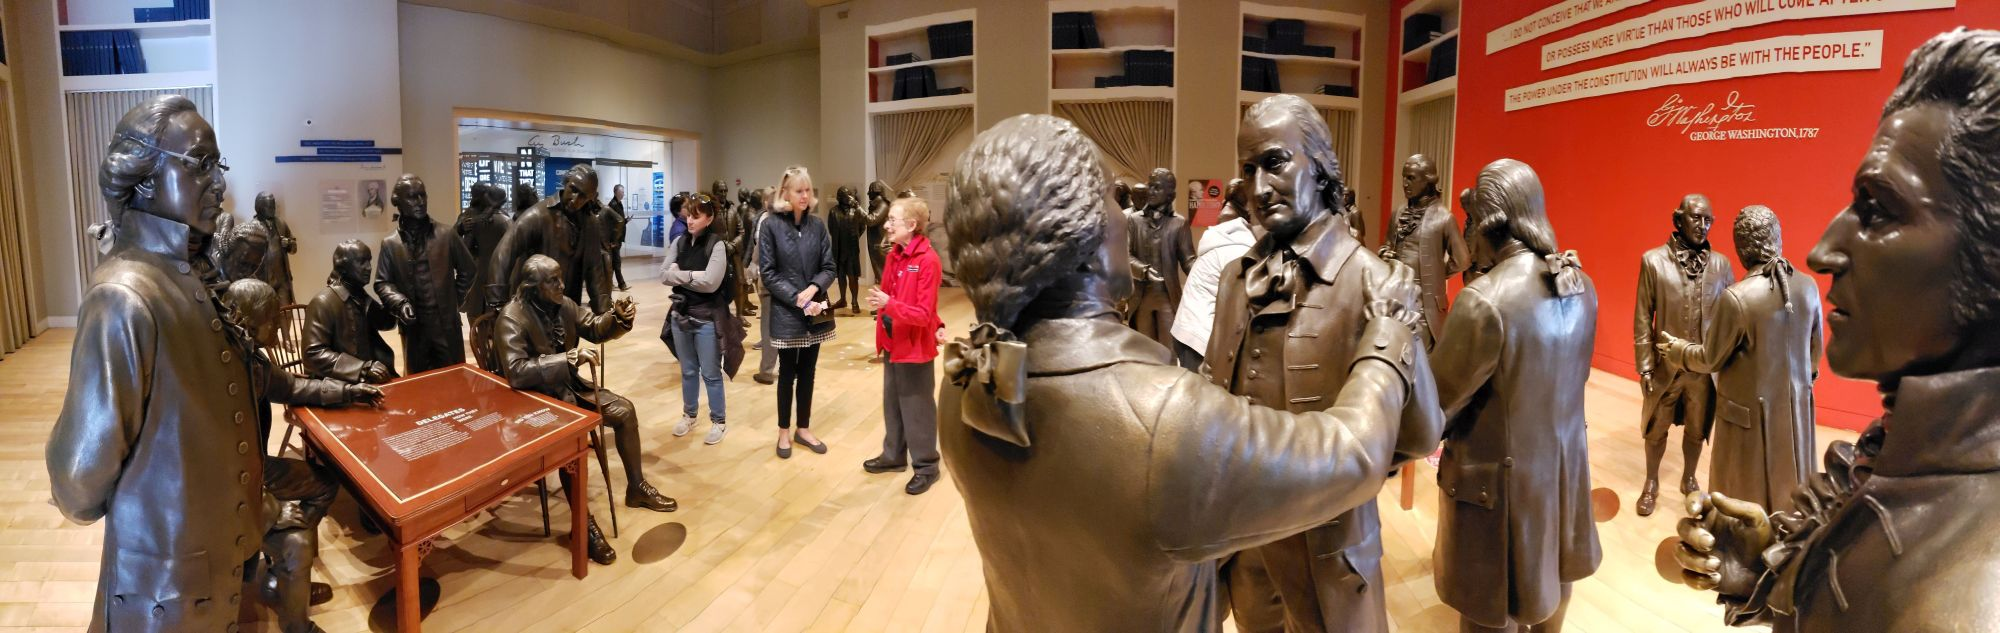 Visitors can walk among lifesize statues of the men who attended the Constitutional Convention at the National Center for the Constitution. Photo: Edwin Grosvenor.